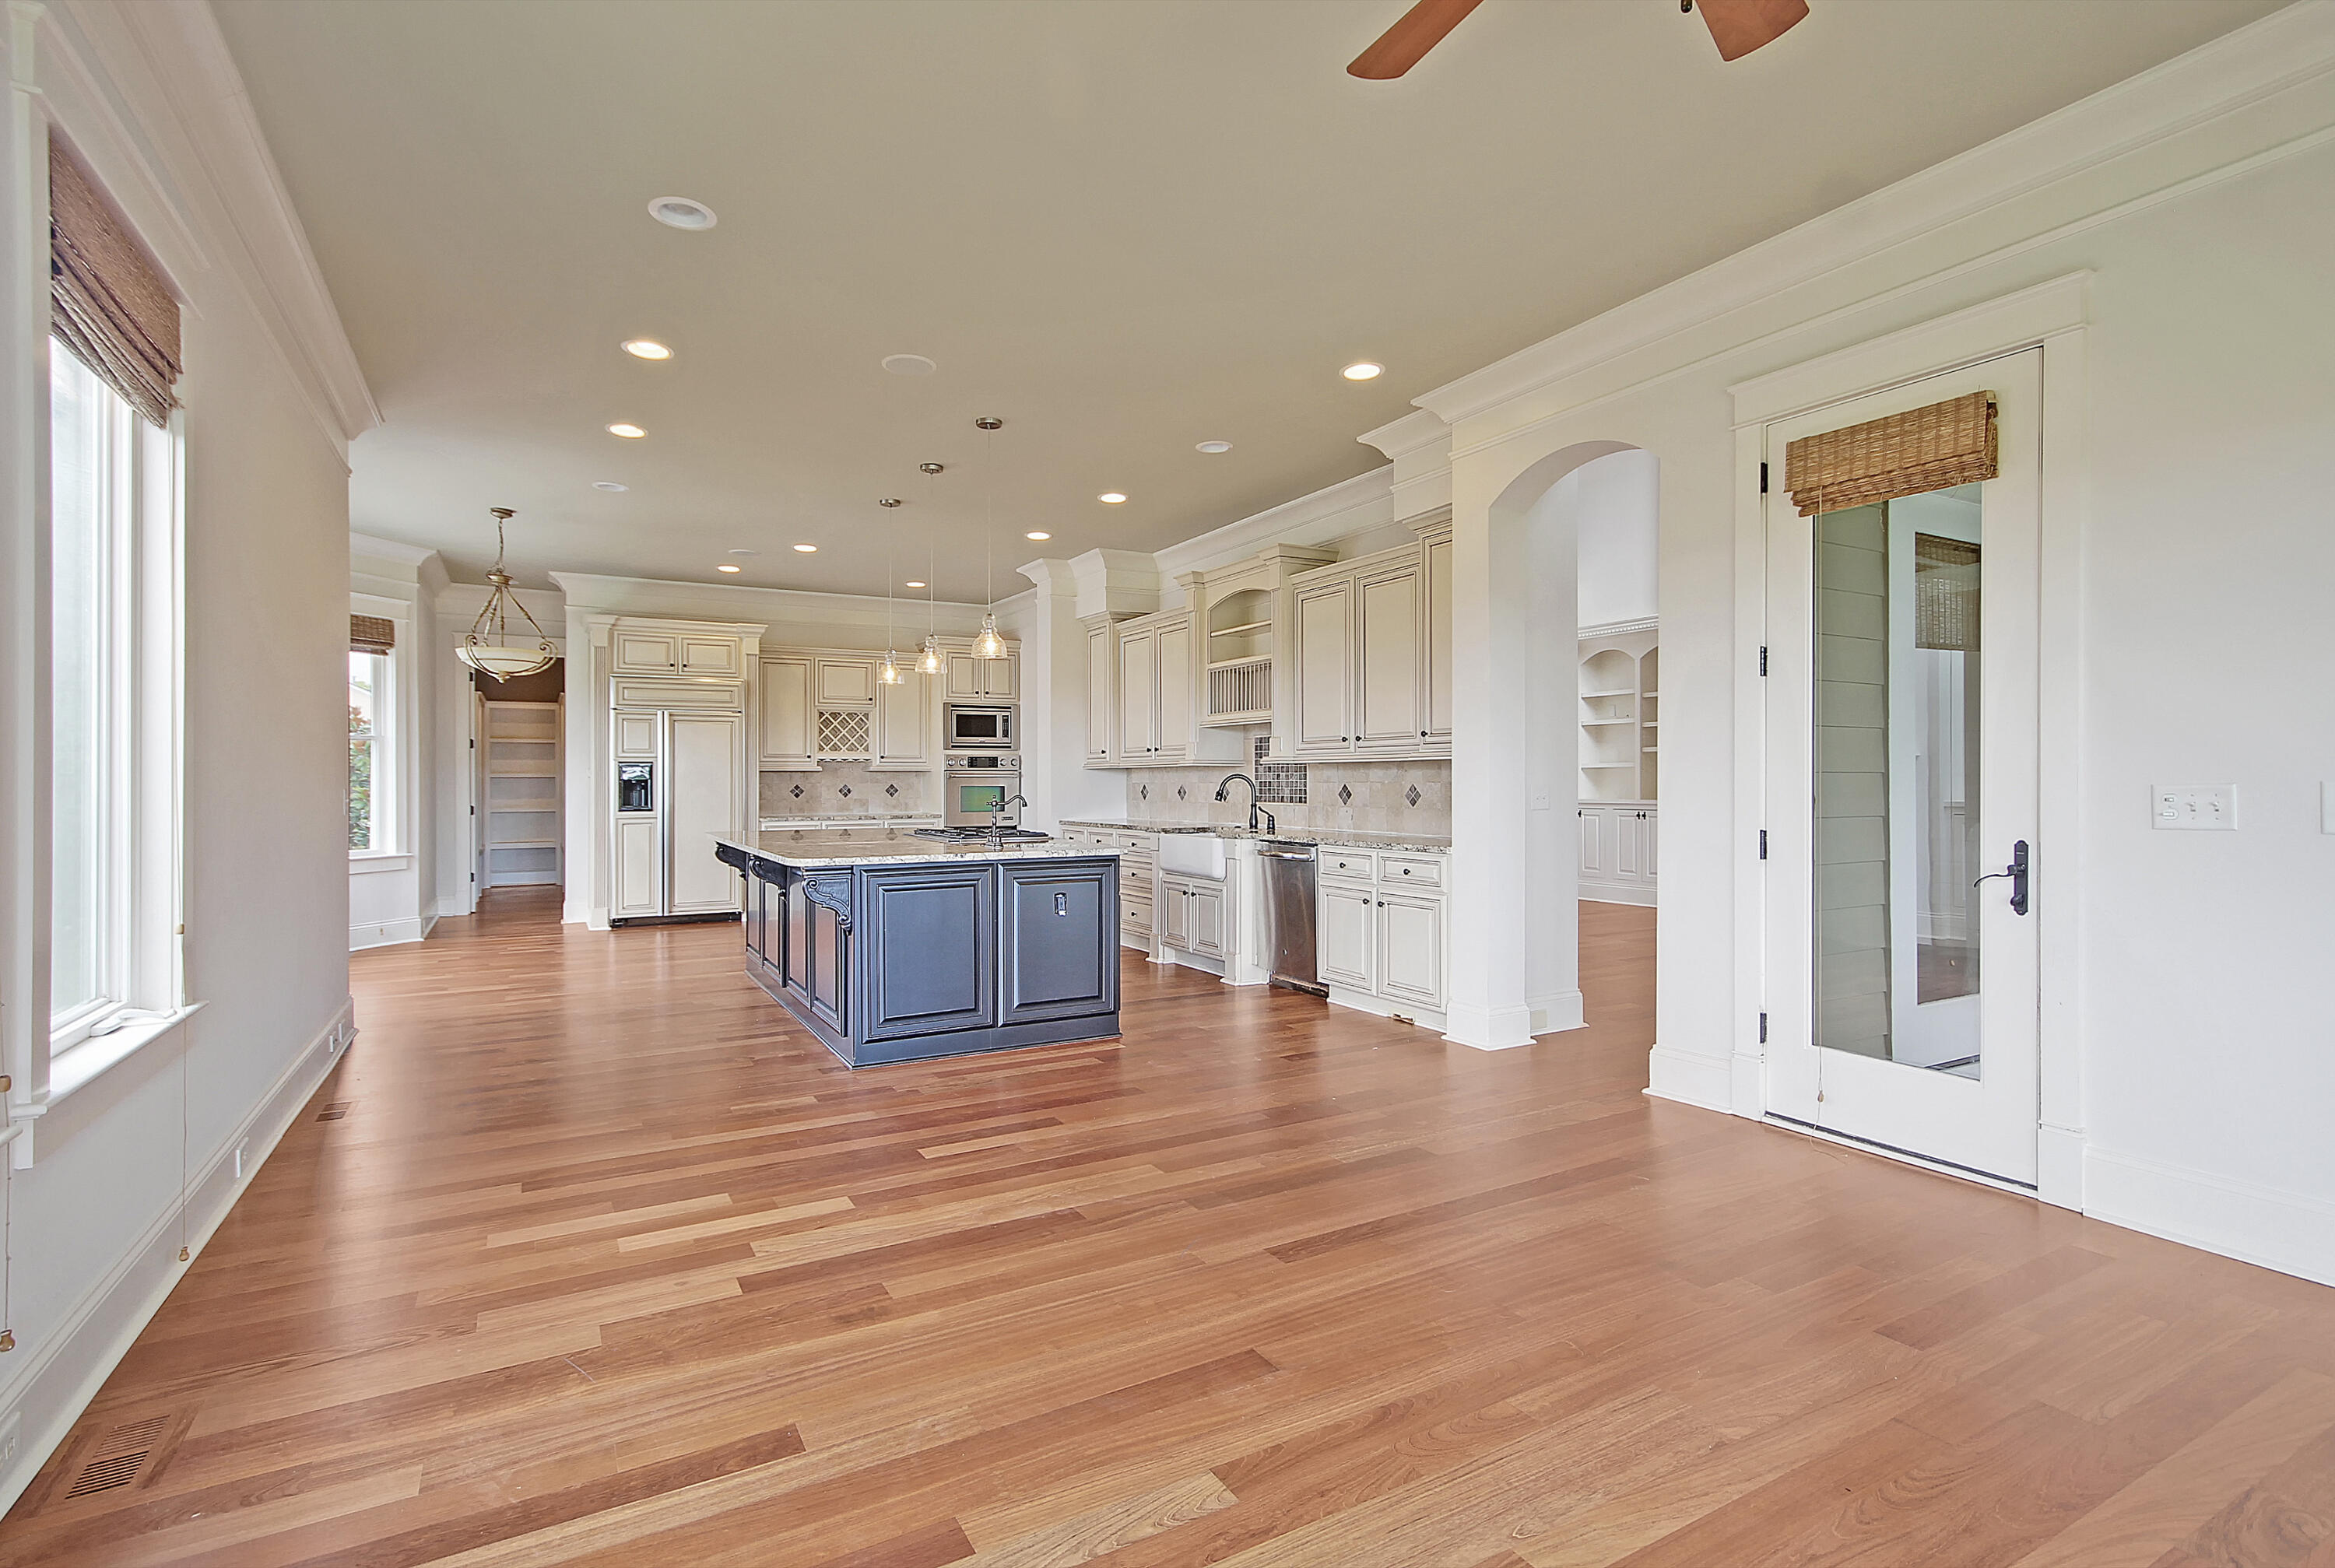 Rivertowne Country Club Homes For Sale - 1632 Rivertowne Country Club, Mount Pleasant, SC - 55